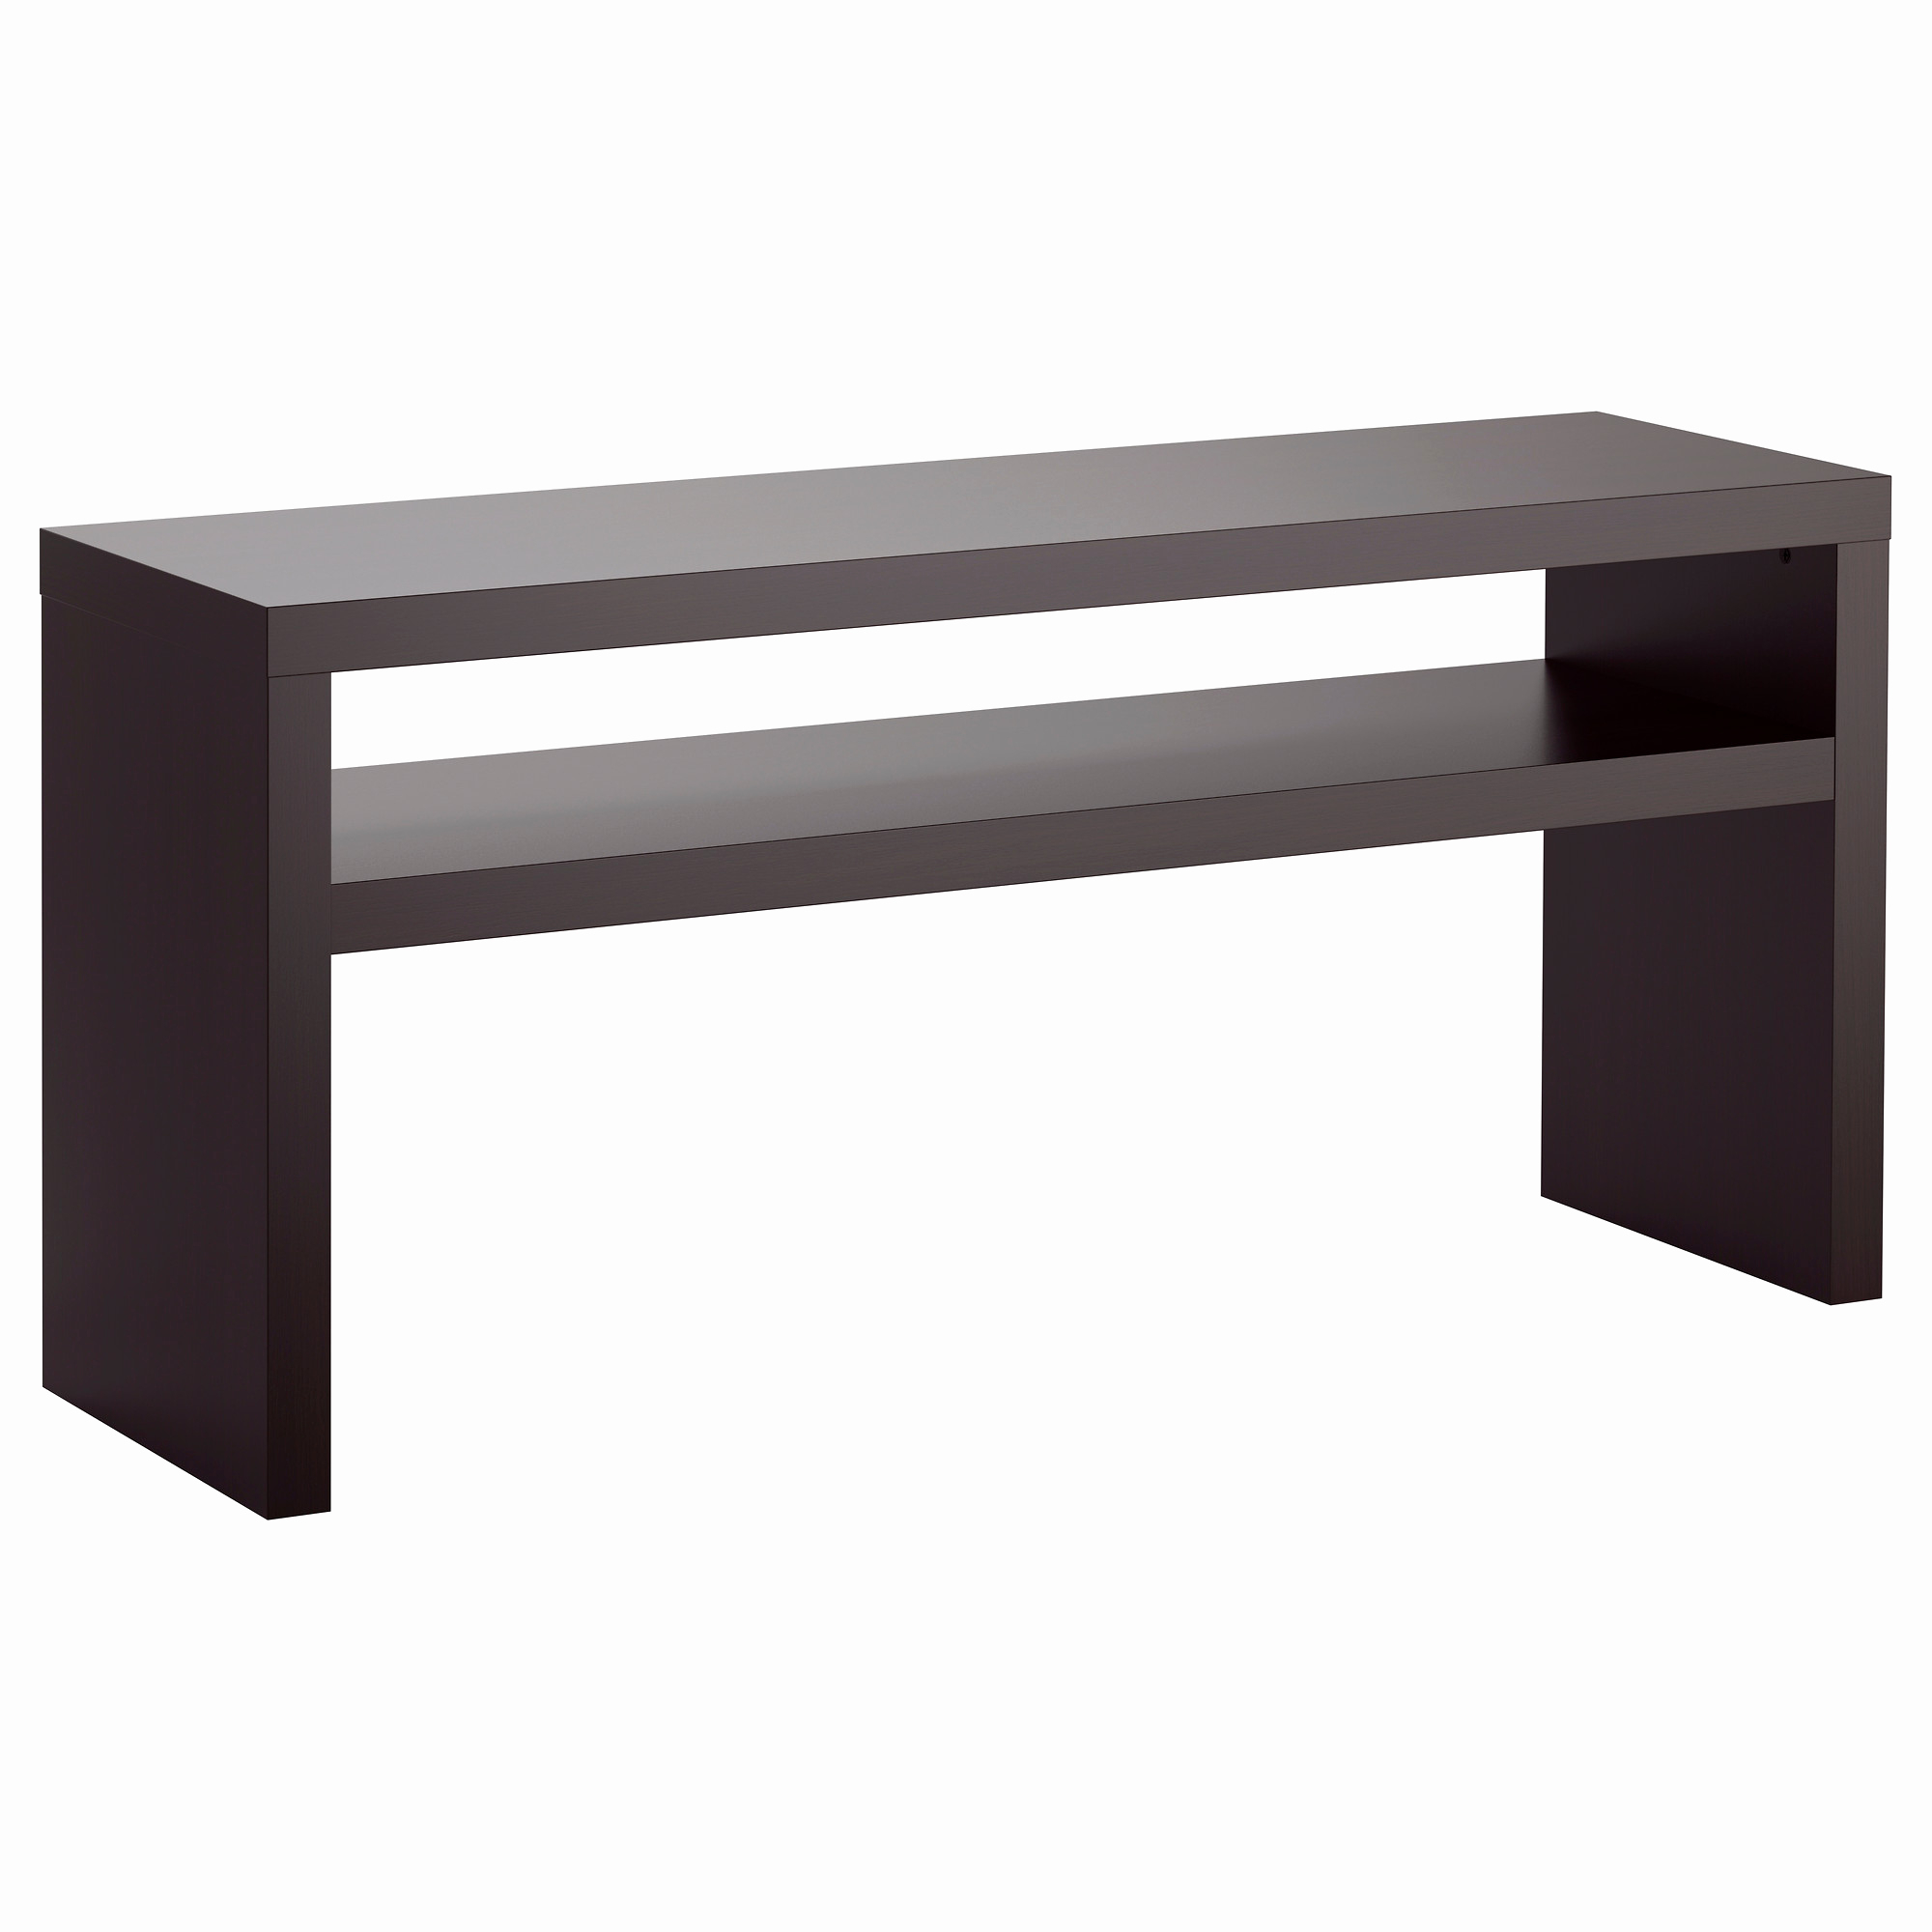 84 Inch Sofa Table Outstanding Console Tables Ikea Console Table With Regard To Silviano 60 Inch Iron Console Tables (View 2 of 20)